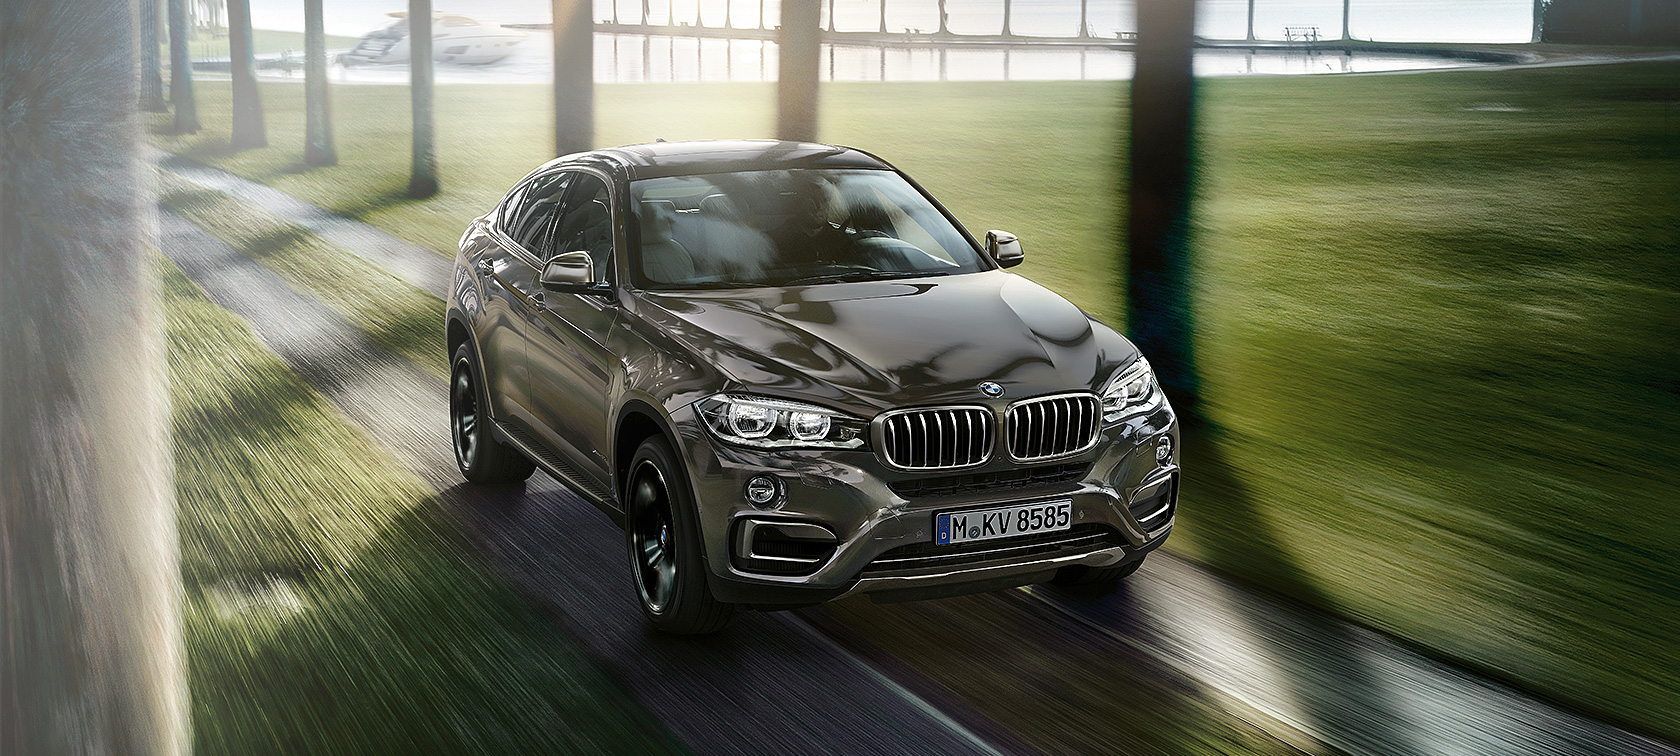 BMW X6 - Carrosserie marron - Vue de face